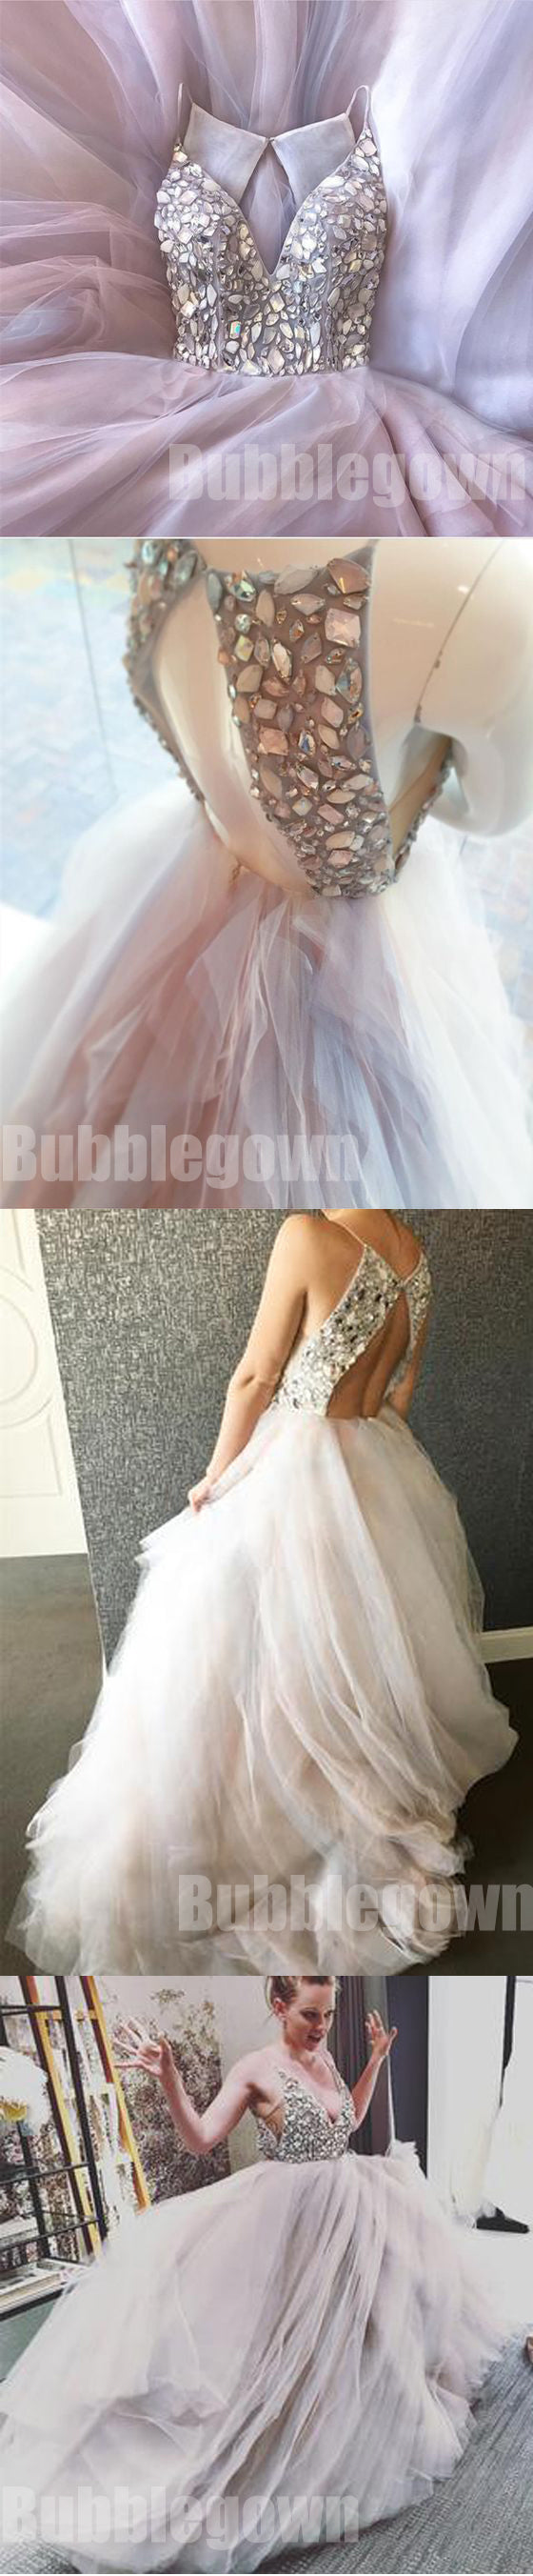 Beaded Top Open Back Charming Popular Cheap Long Evening Prom Dresses, BGP028 - Bubble Gown